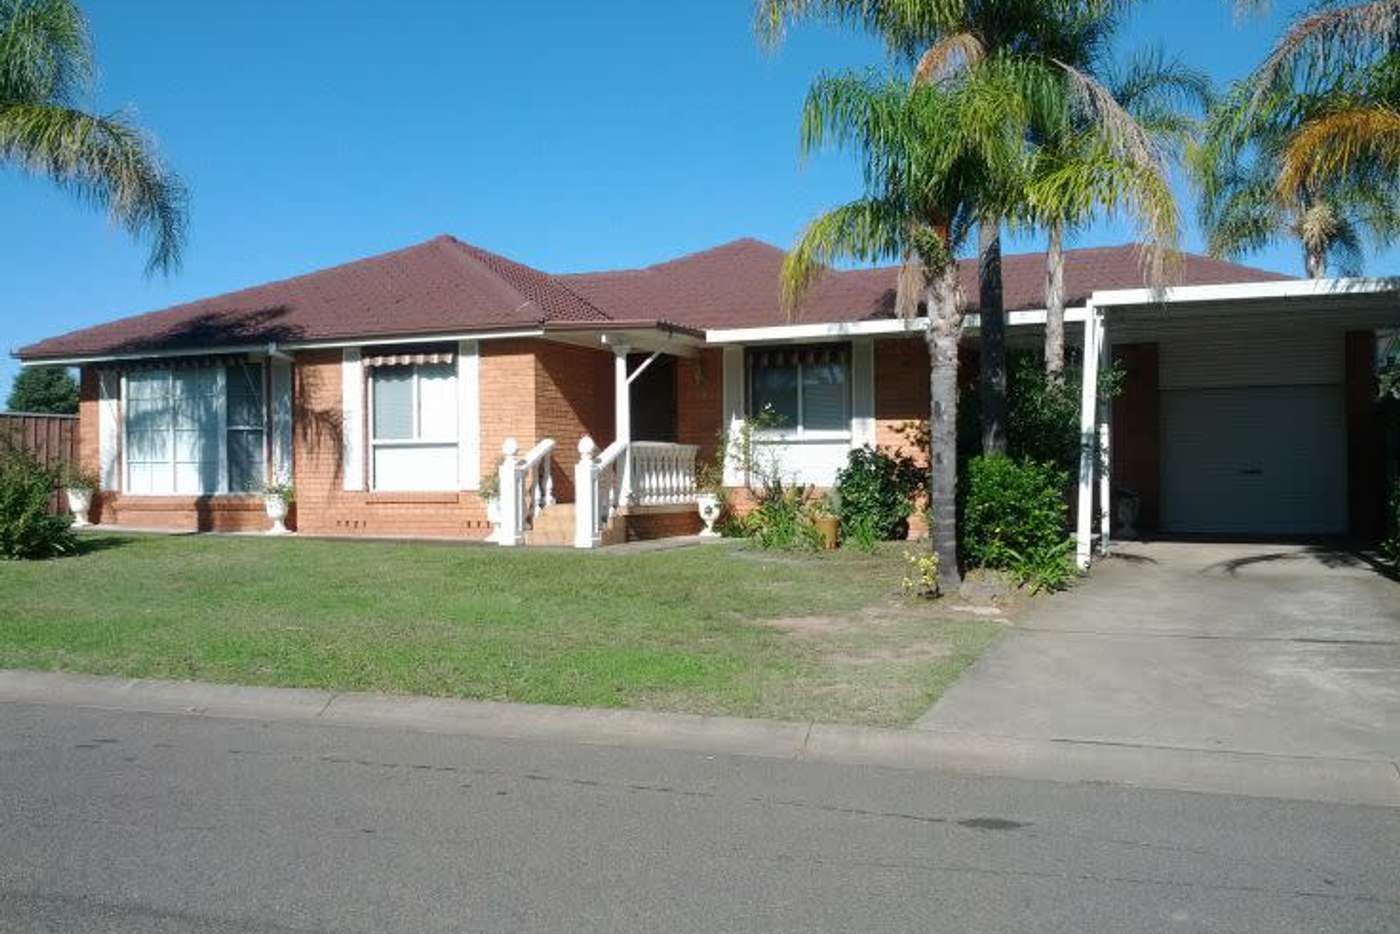 Main view of Homely house listing, 19 Trout Place, St Clair NSW 2759